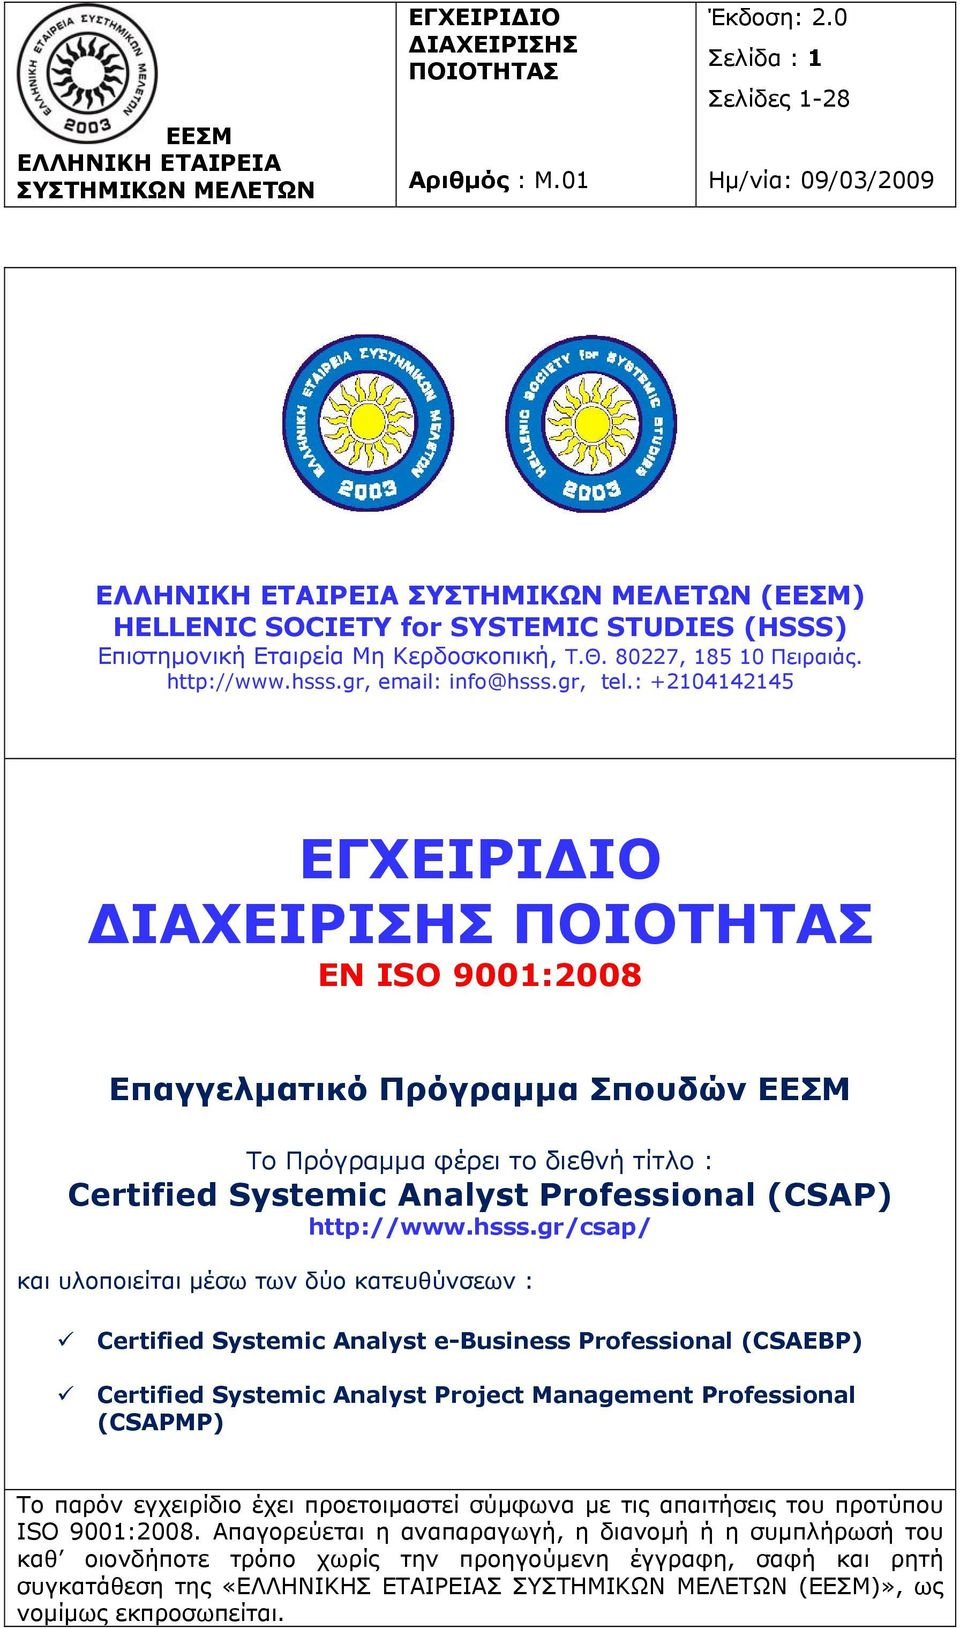 gr/csap/ και υλοποιείται μέσω των δύο κατευθύνσεων : Certified Systemic Analyst e-business Professional (CSAEBP) Certified Systemic Analyst Project Management Professional (CSAPMP) Το παρόν